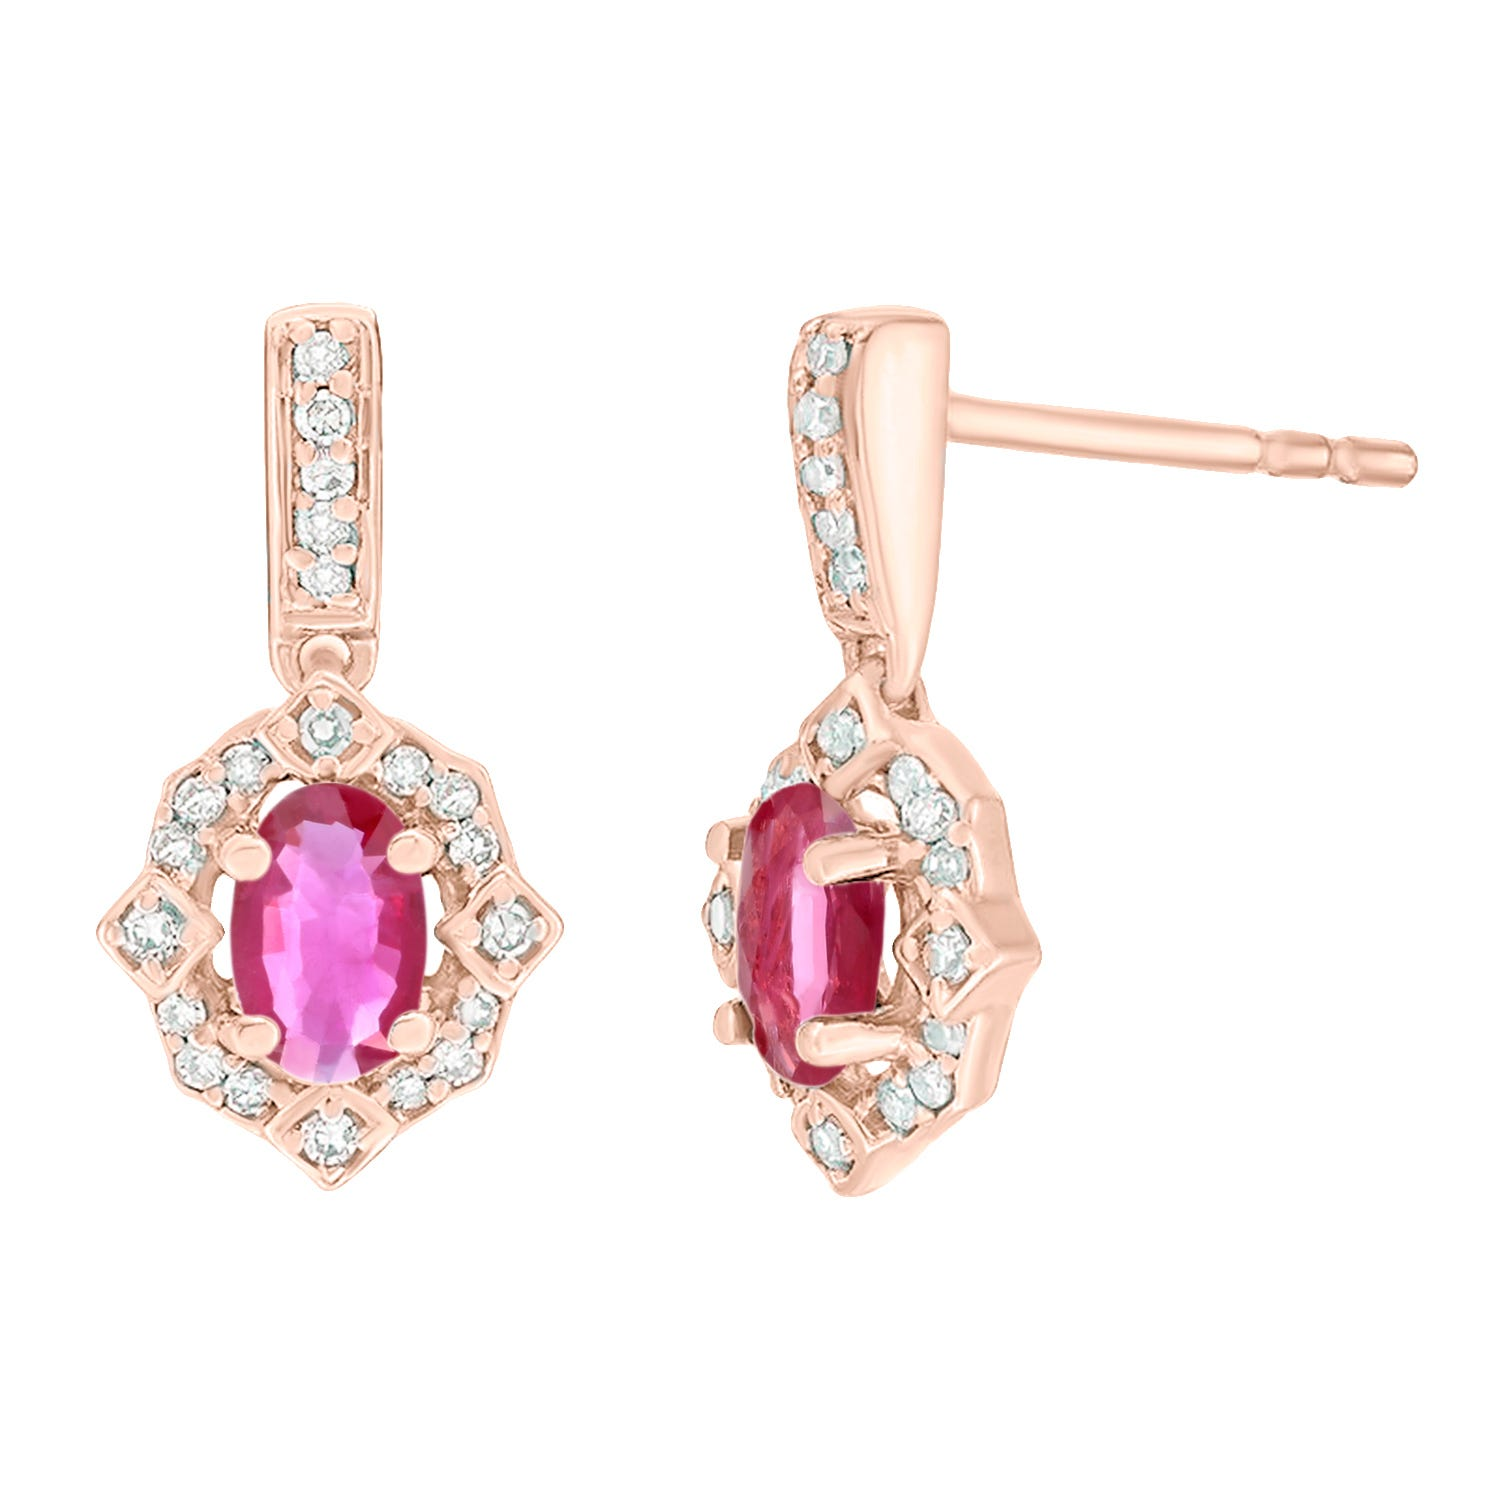 Oval Ruby and Diamond Earrings 1/8ctw in 10k Rose Gold